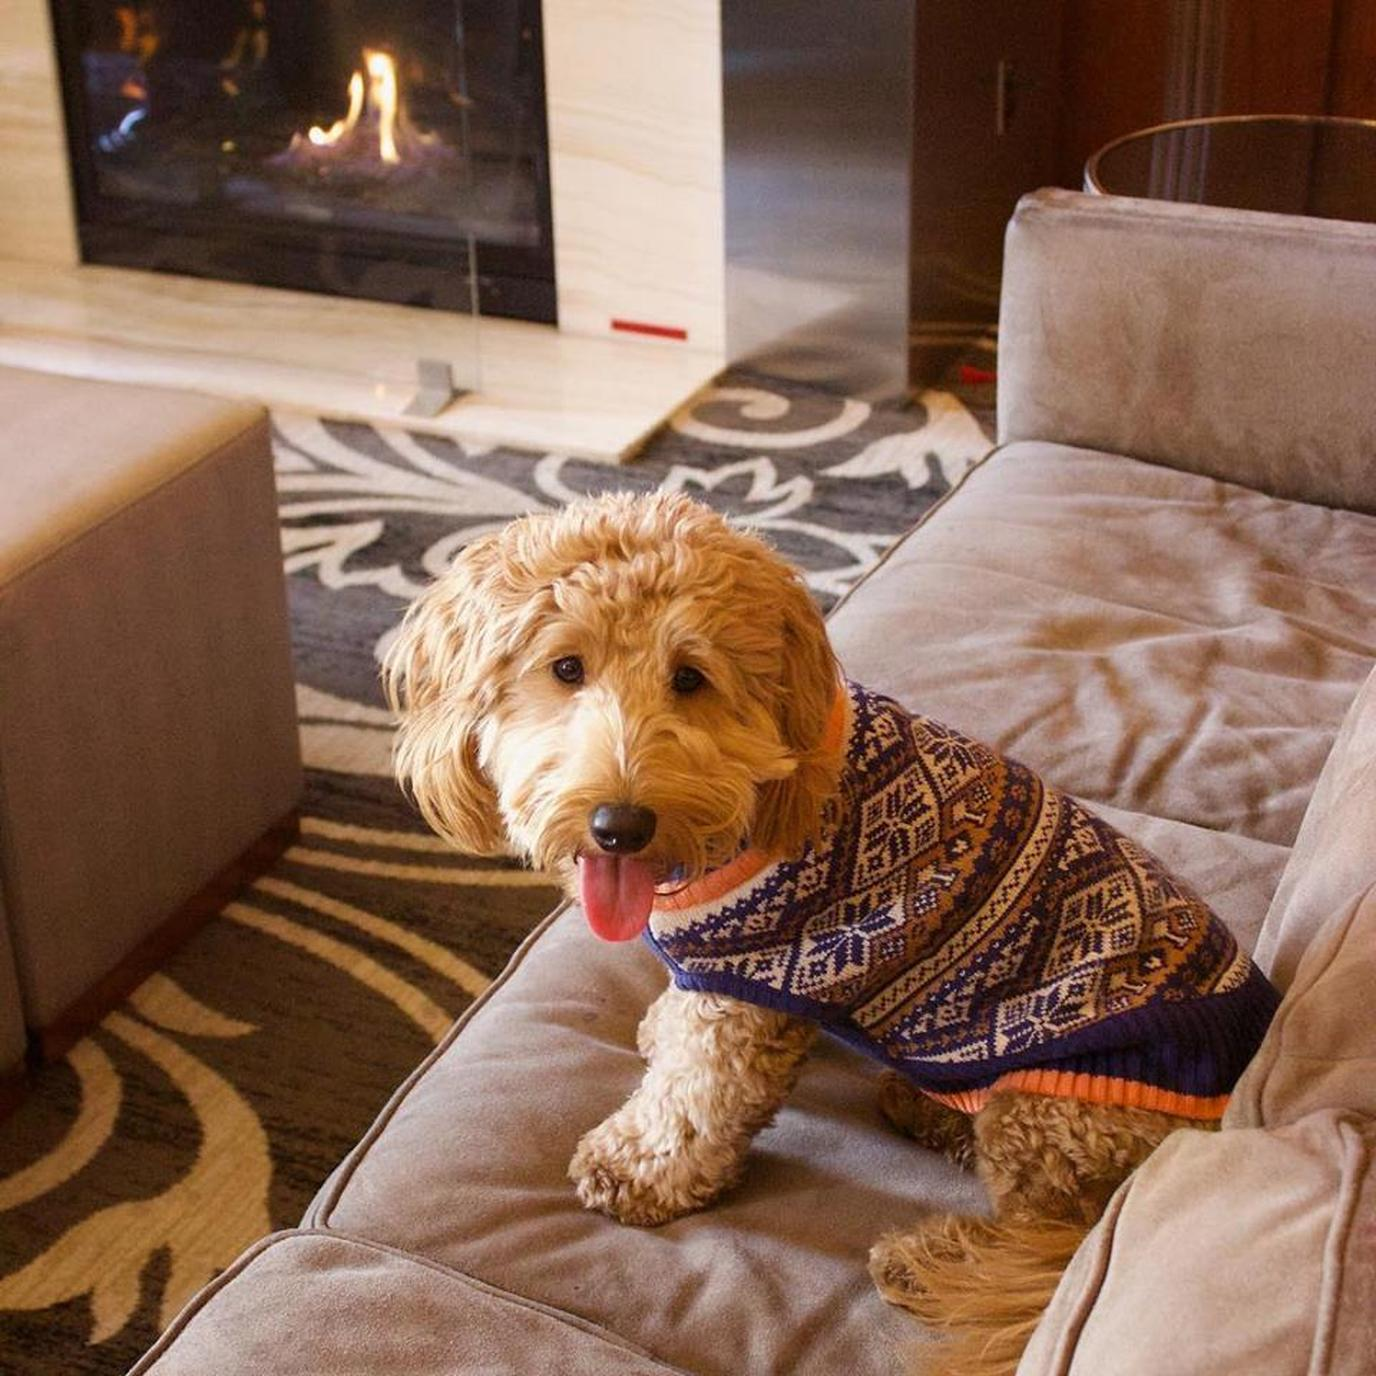 Millie is a highlight of the The dog-friendly Hilton Milwaukee City Center.